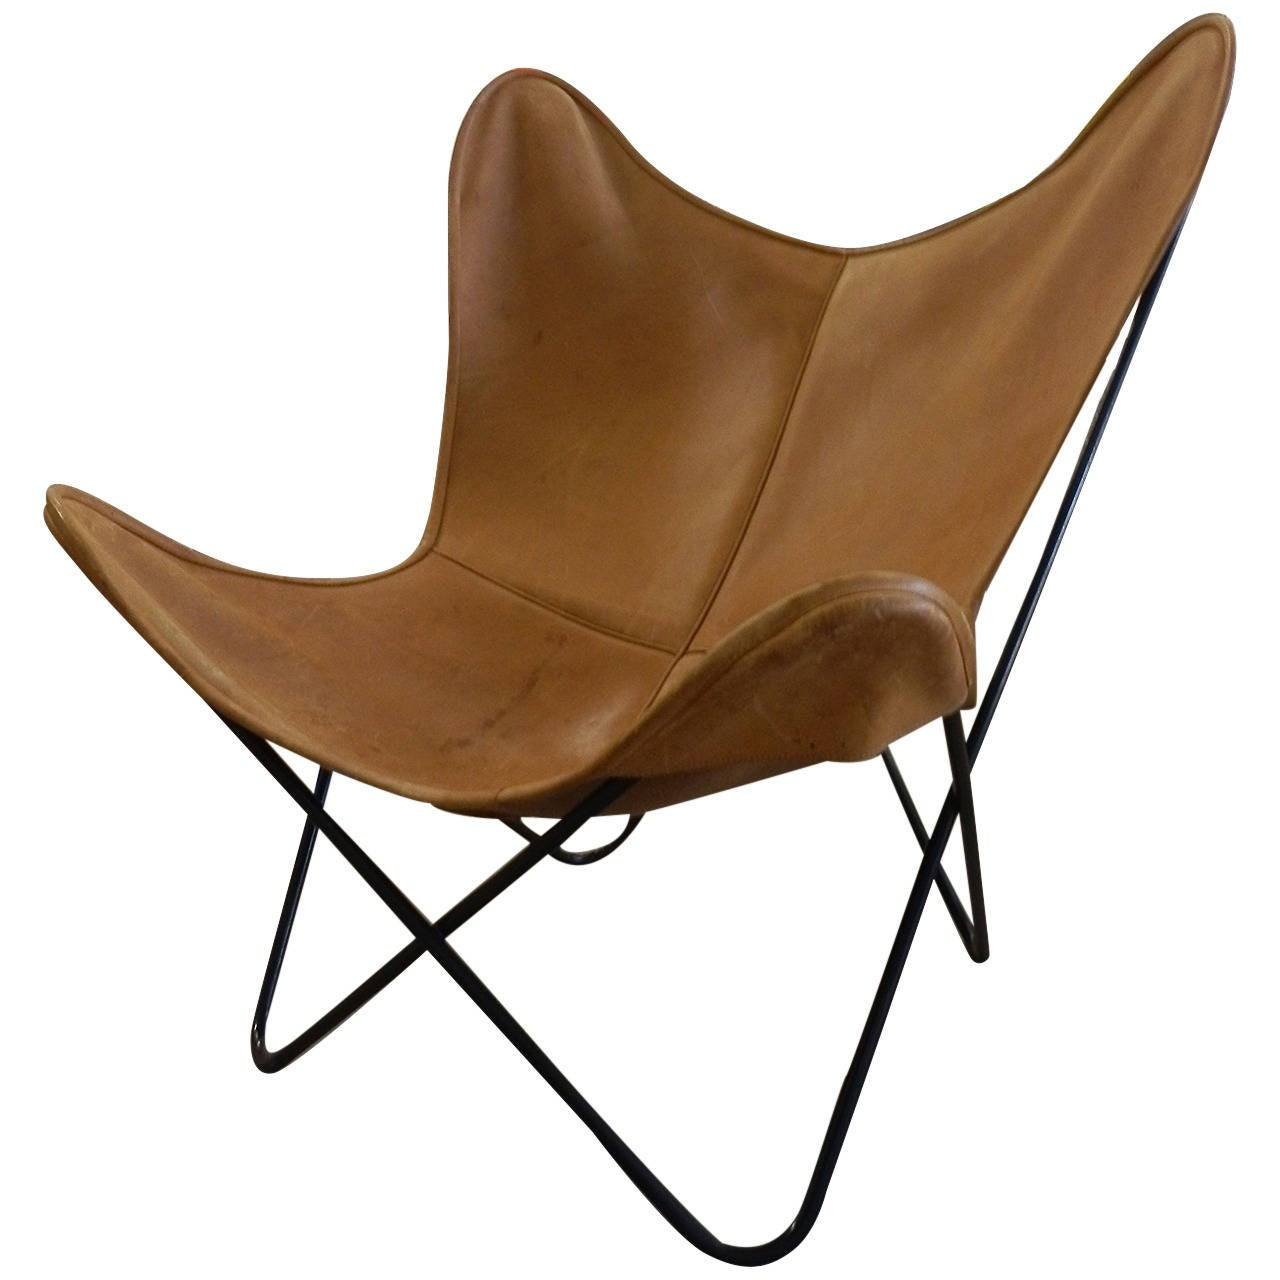 Butterfly Chair Knoll All Original Butterfly Chair By Knoll International